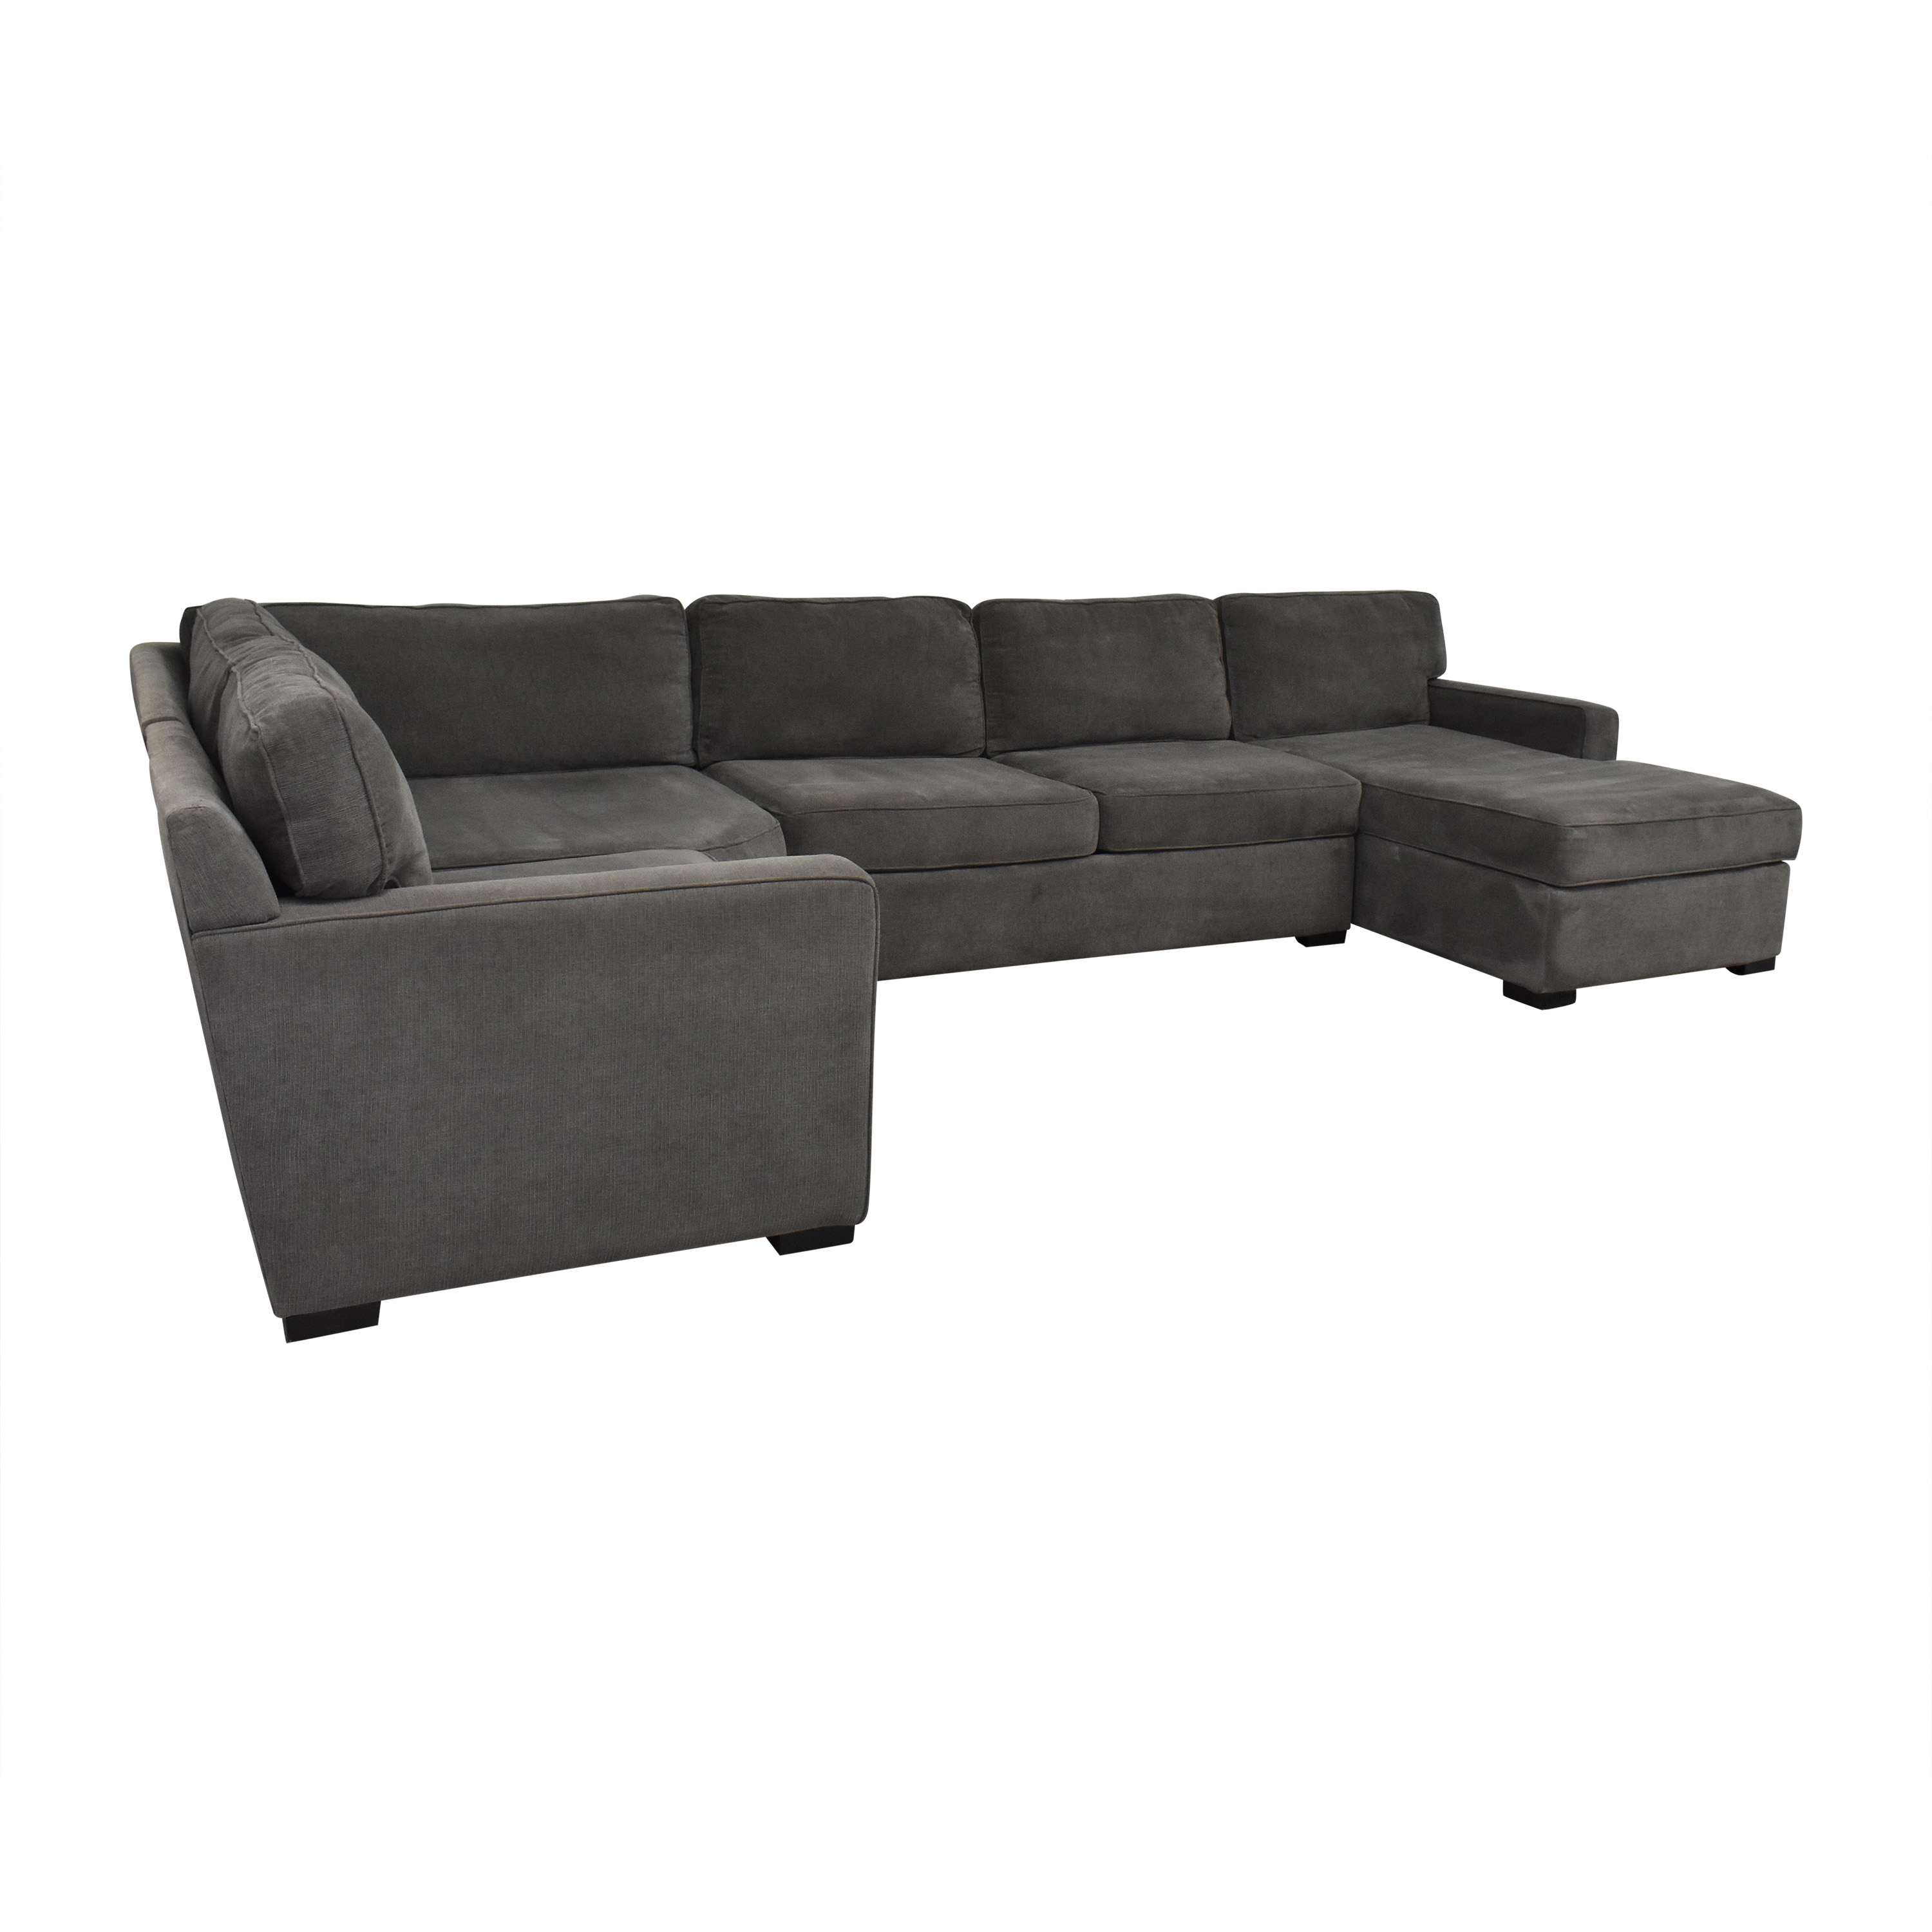 Macy's Macy's Radley Sectional Sofa with Chaise on sale